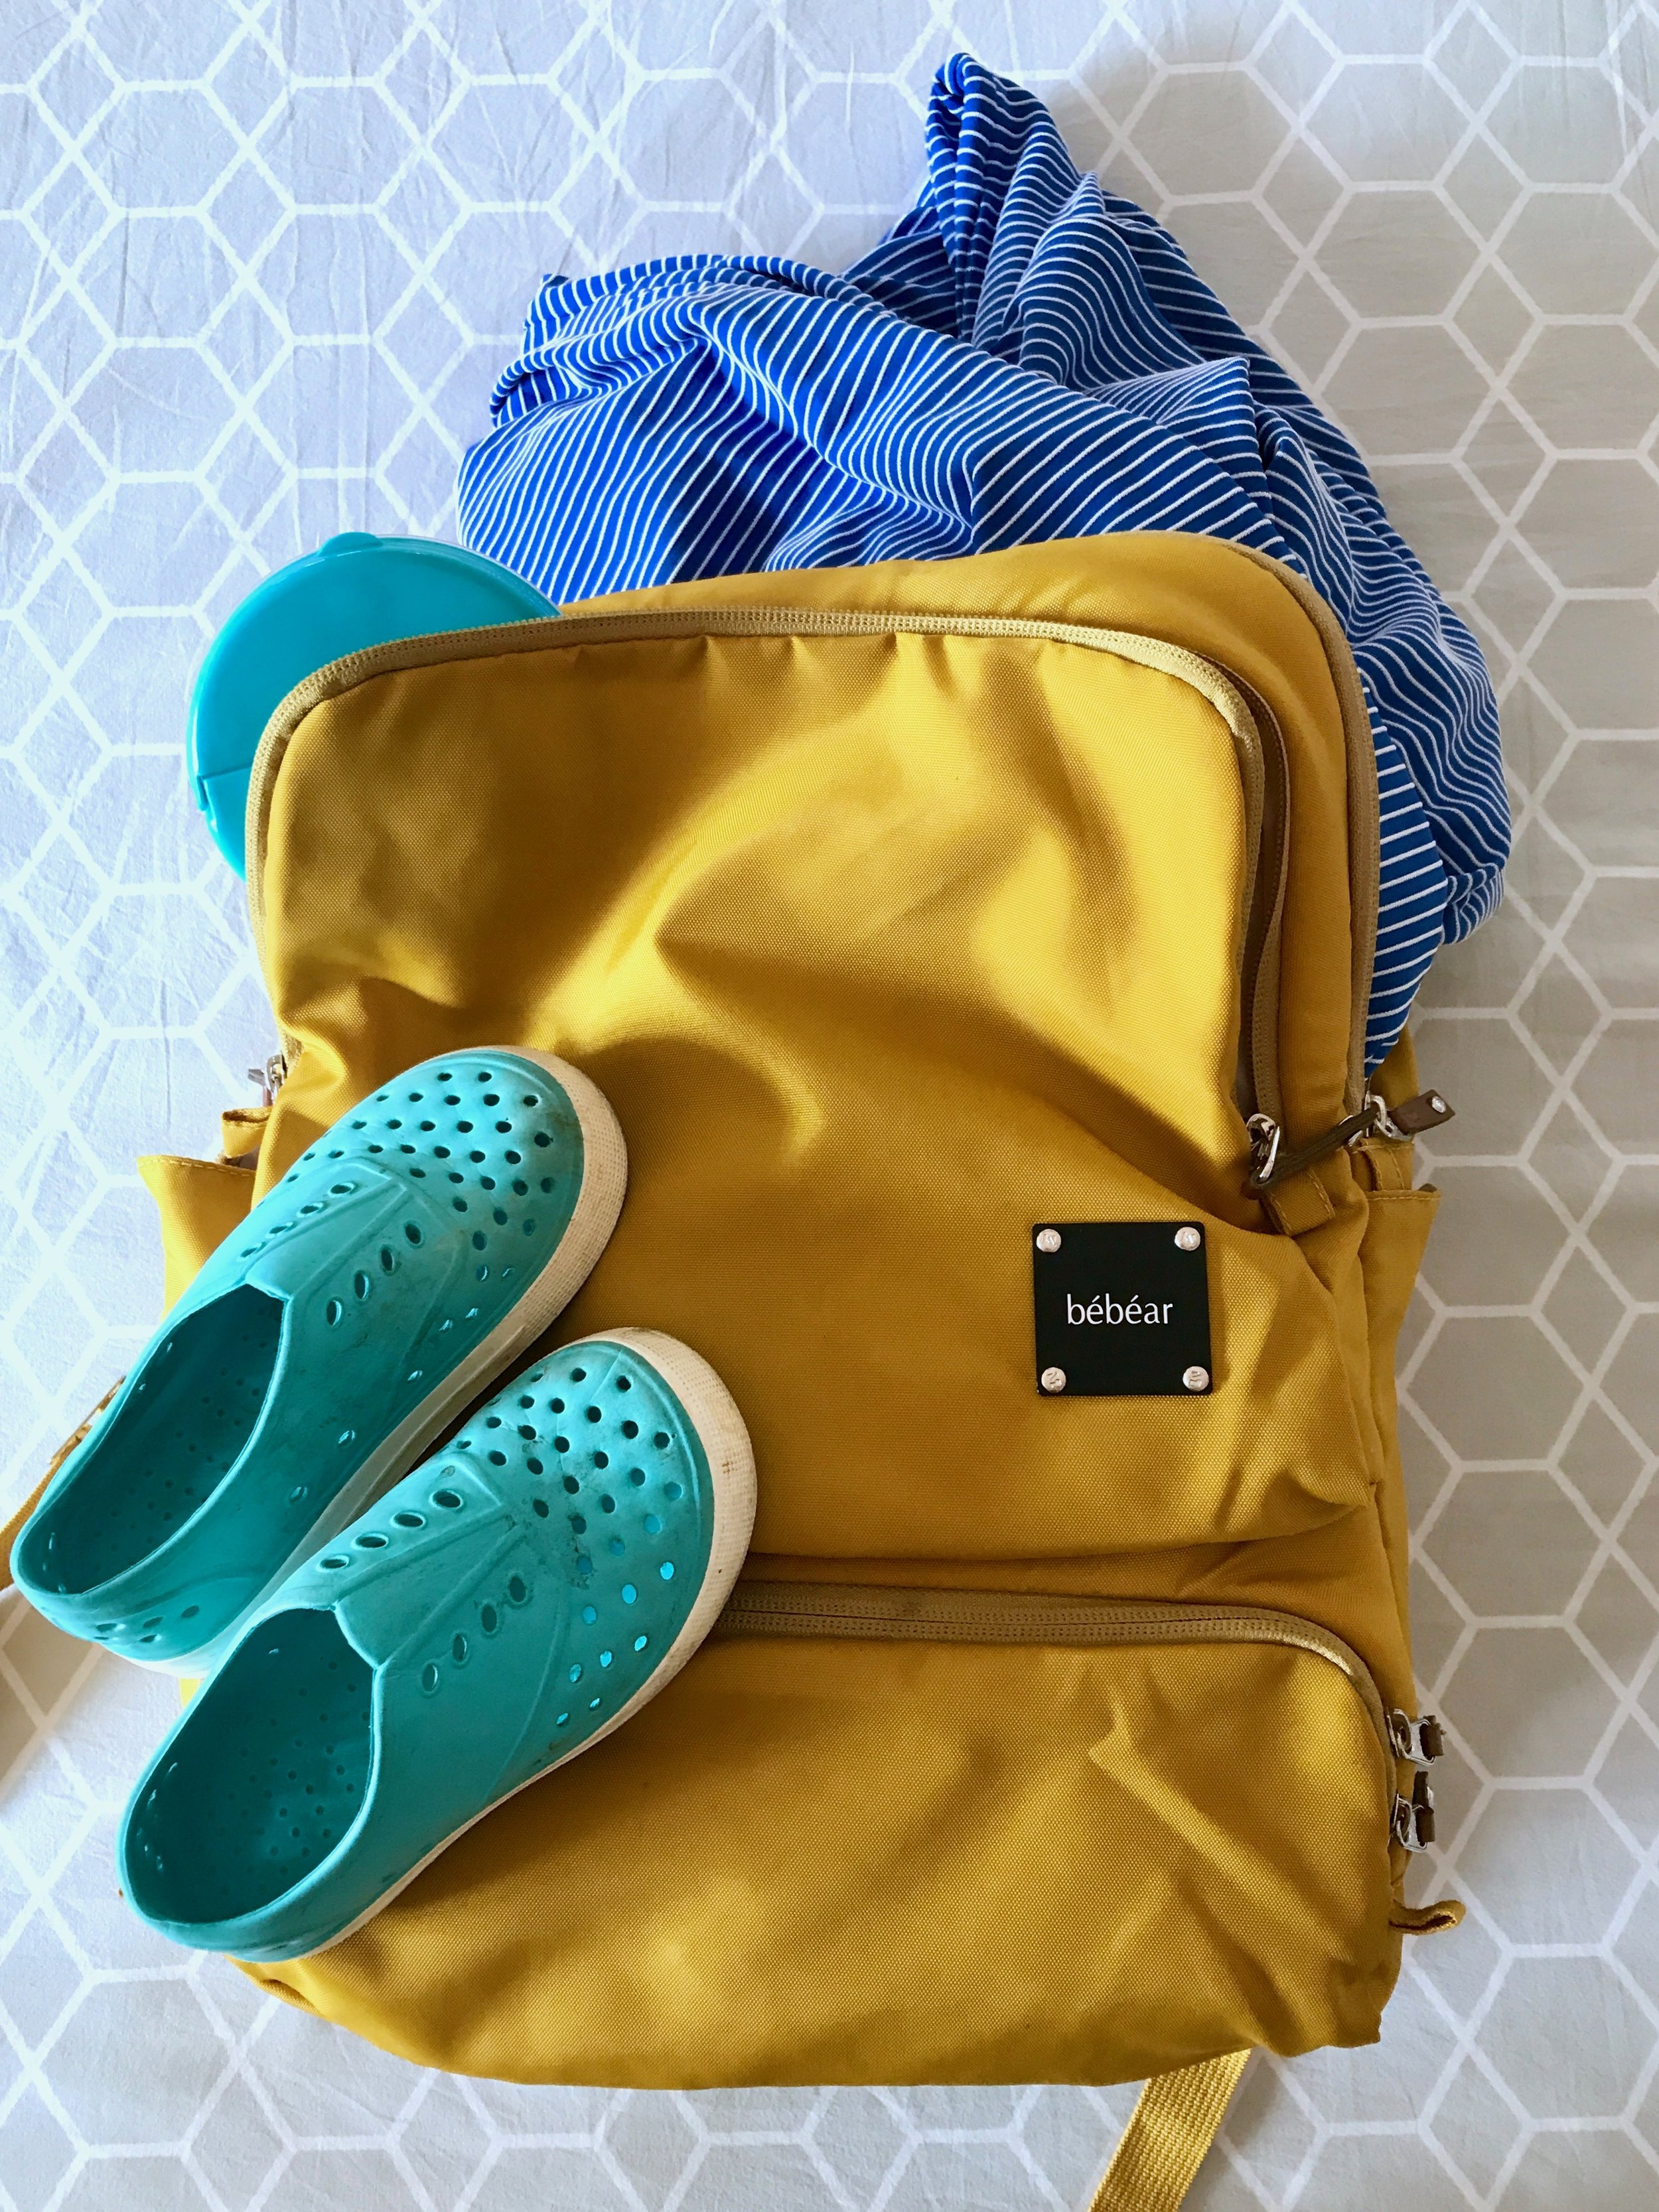 Bebear Backpack - My go to backpack for mums. I happen to win at the event and am so in love! I take to to muay thai, picnics and any other day trips. All you need to know is: pockets galore.